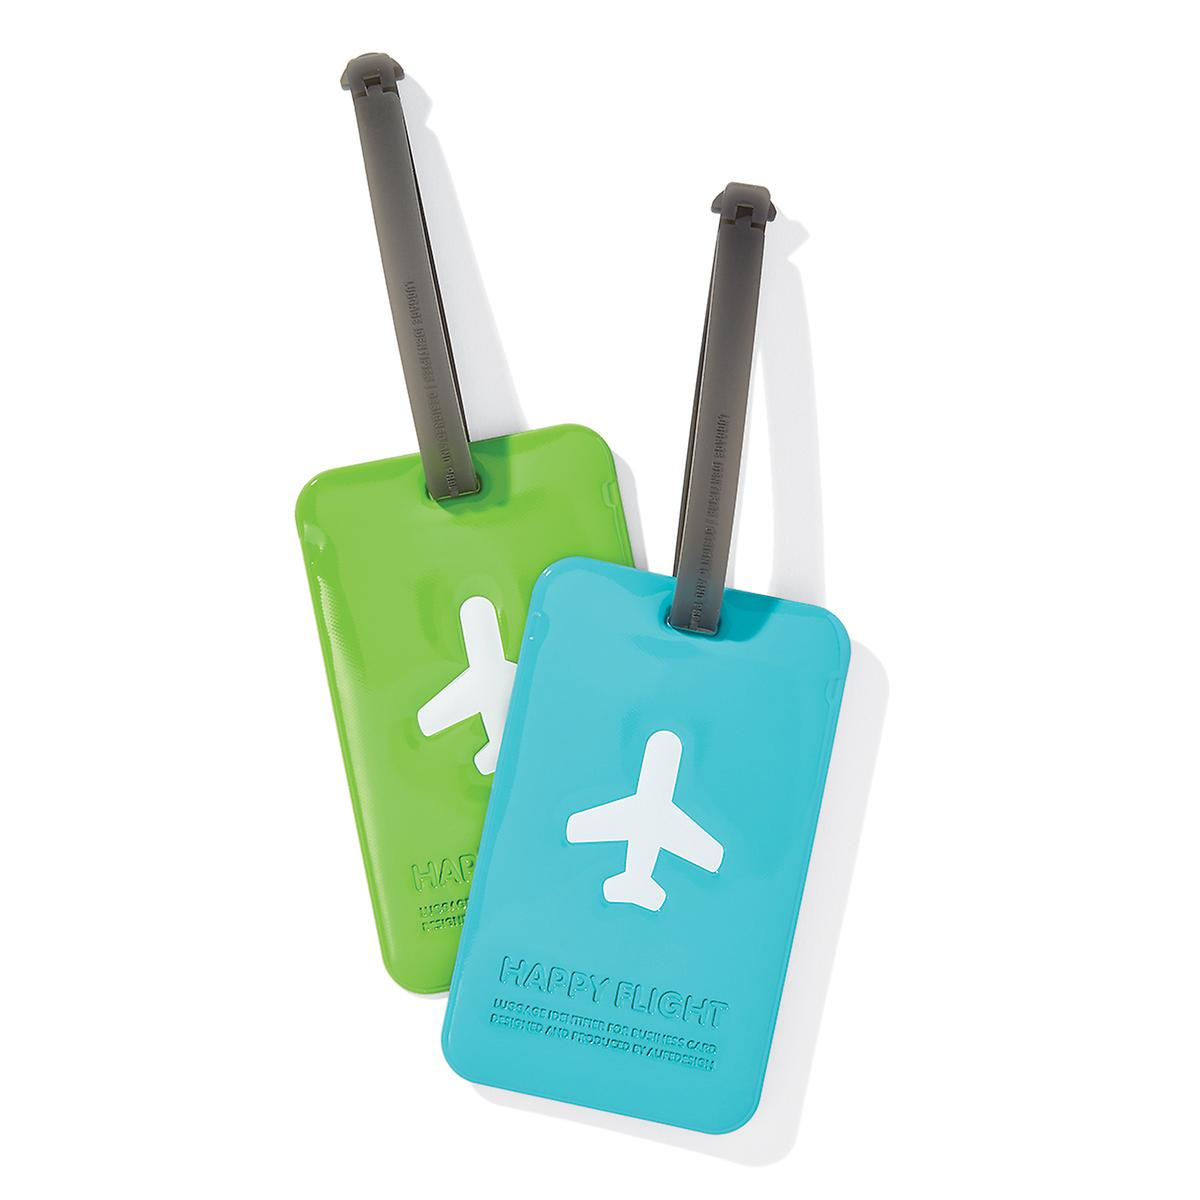 Happy Flight Luggage Tags | The Container Store